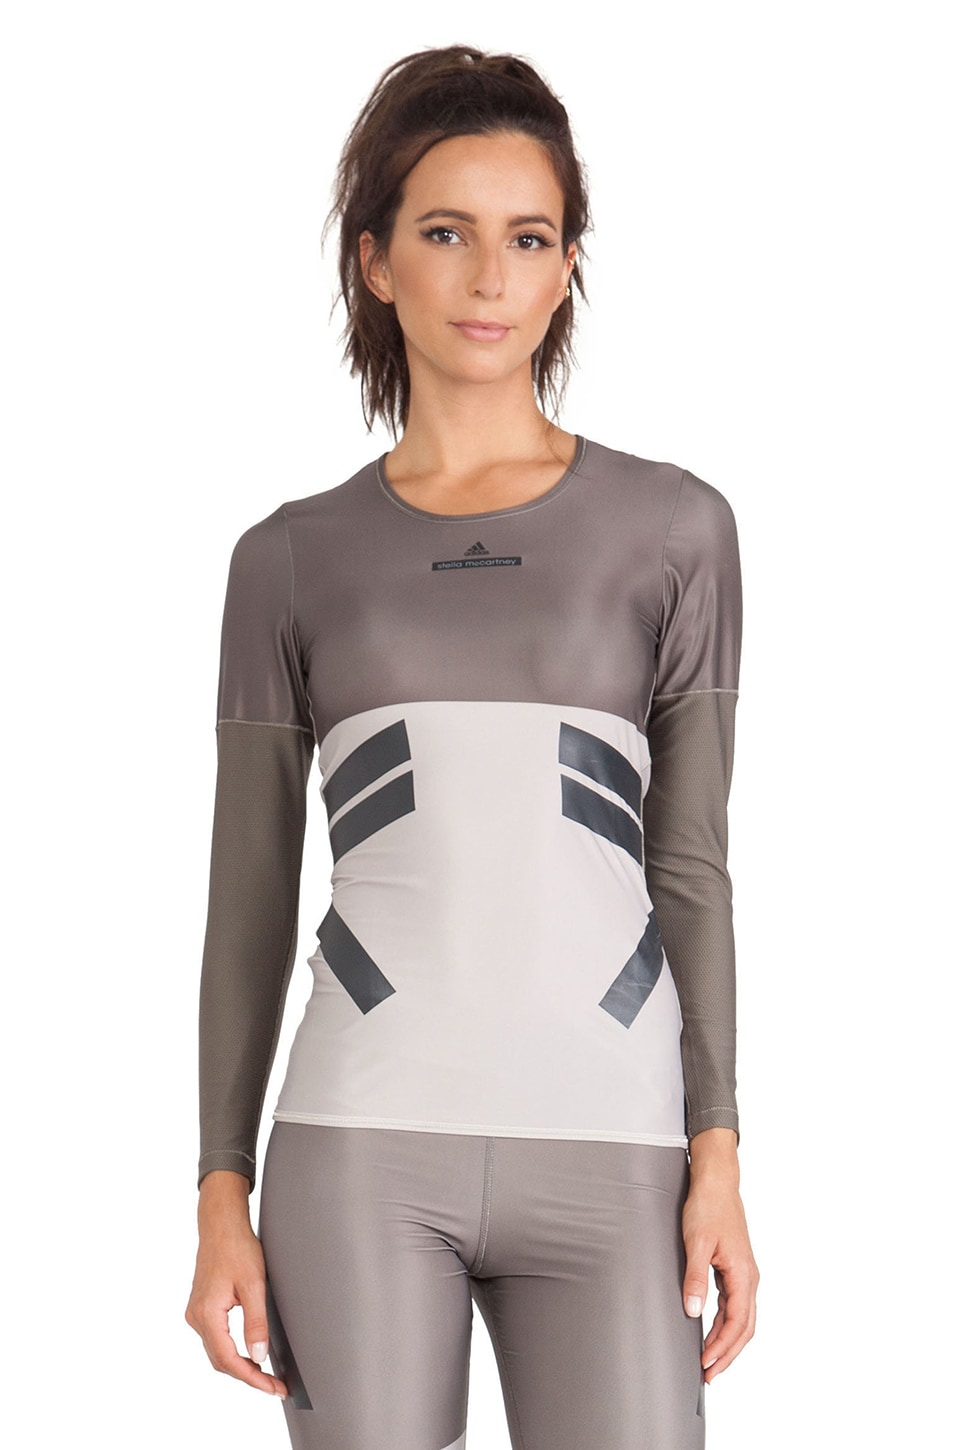 adidas by Stella McCartney 3/4 Sleeve Techfit Running Tee in Branch & Shell Beige